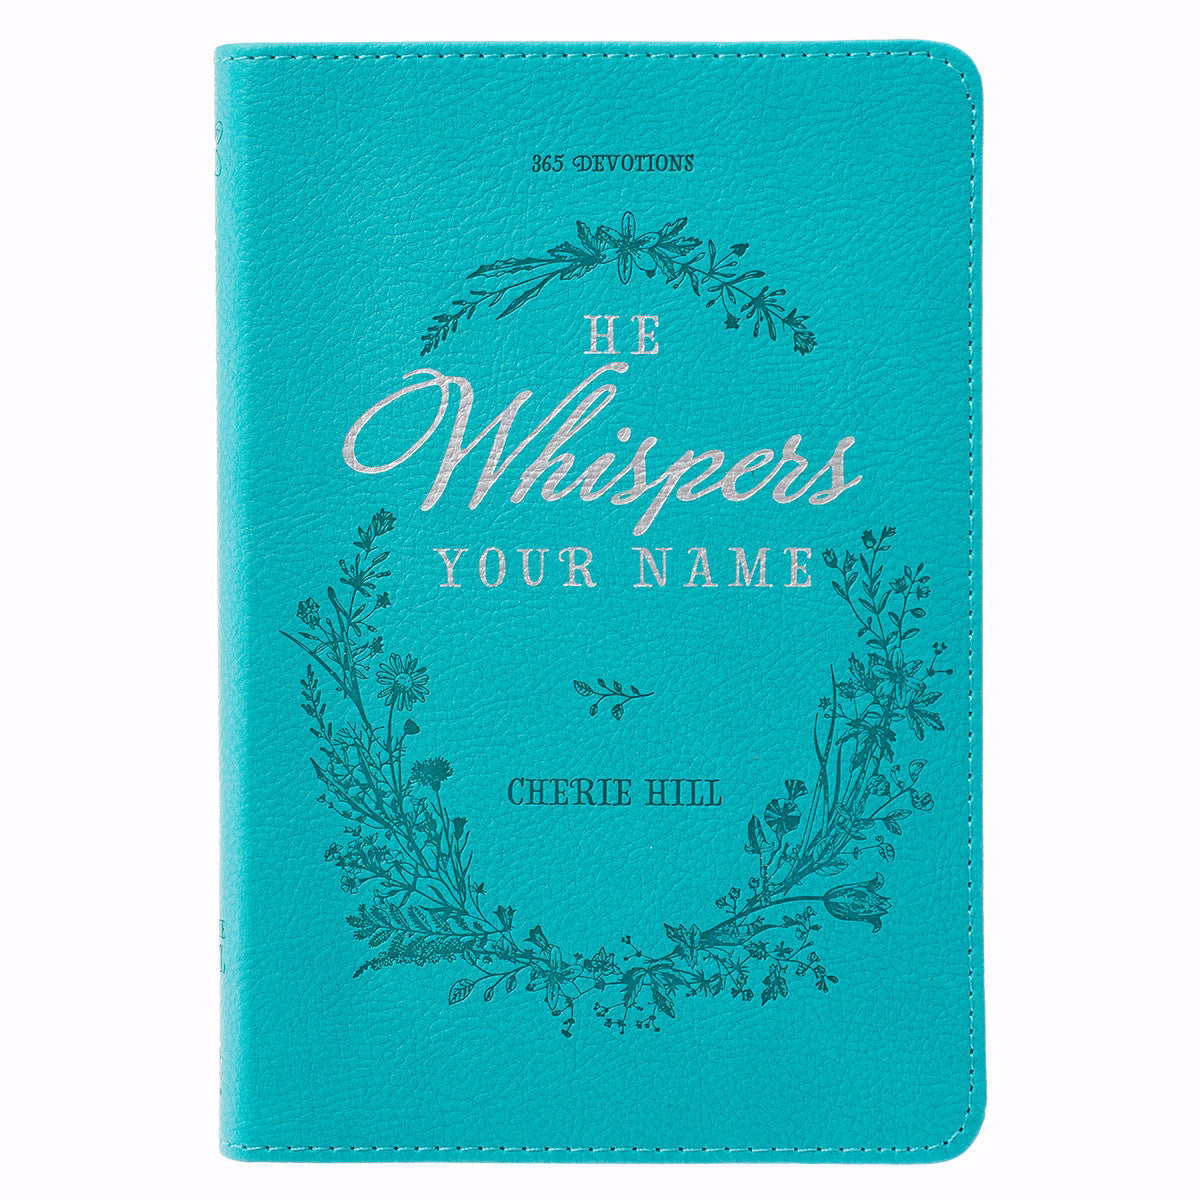 He Whispers Your Name-Teal LuxLeather